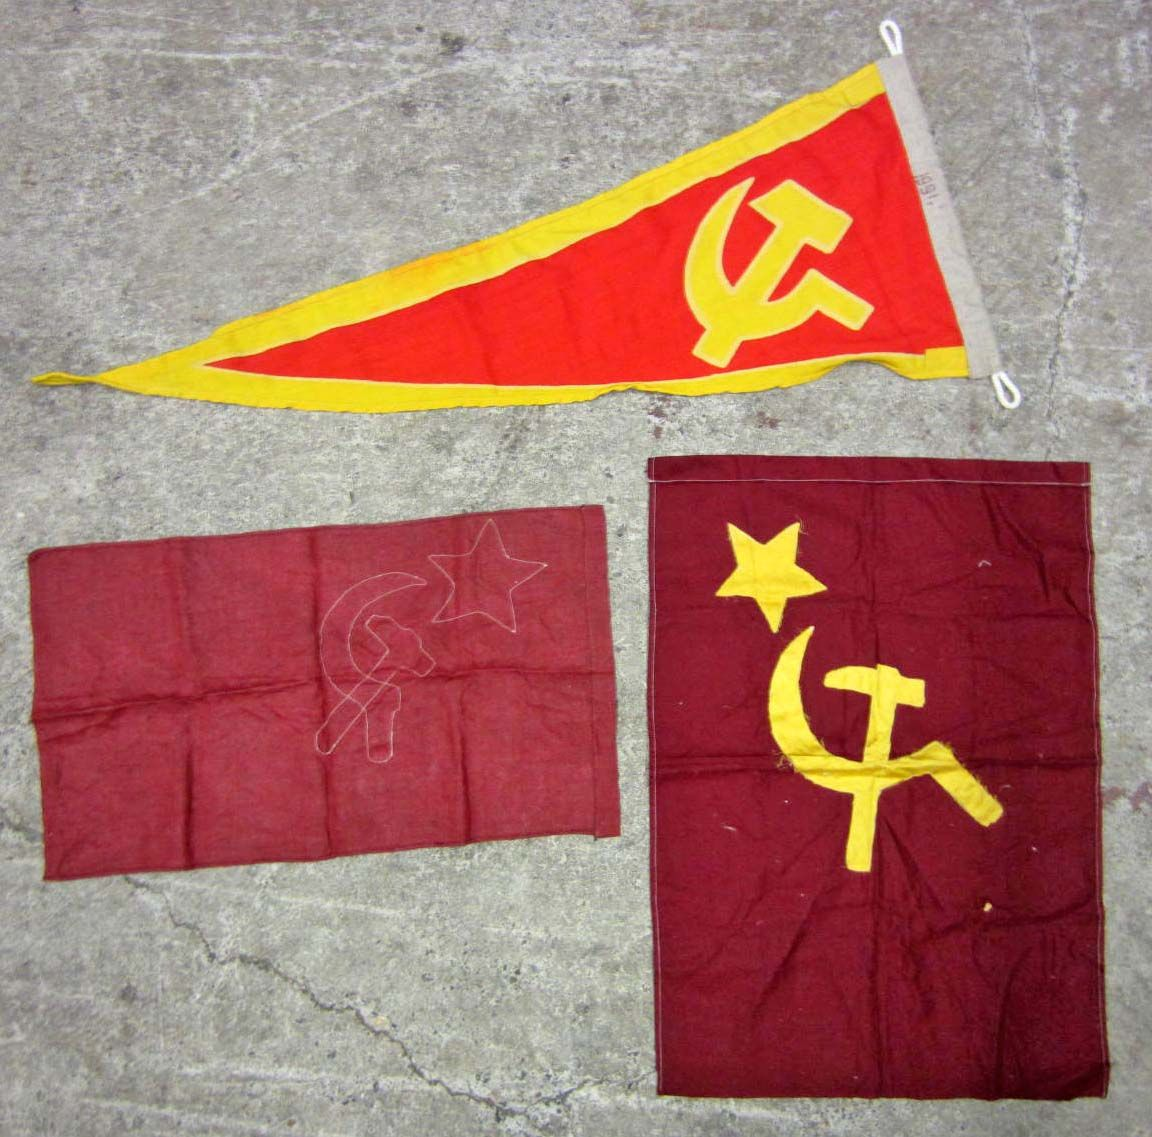 LOT OF 3 SOVIET RUSSIAN MILITARY HAMMER CYCLE AND STAR BATTLE FLAGS